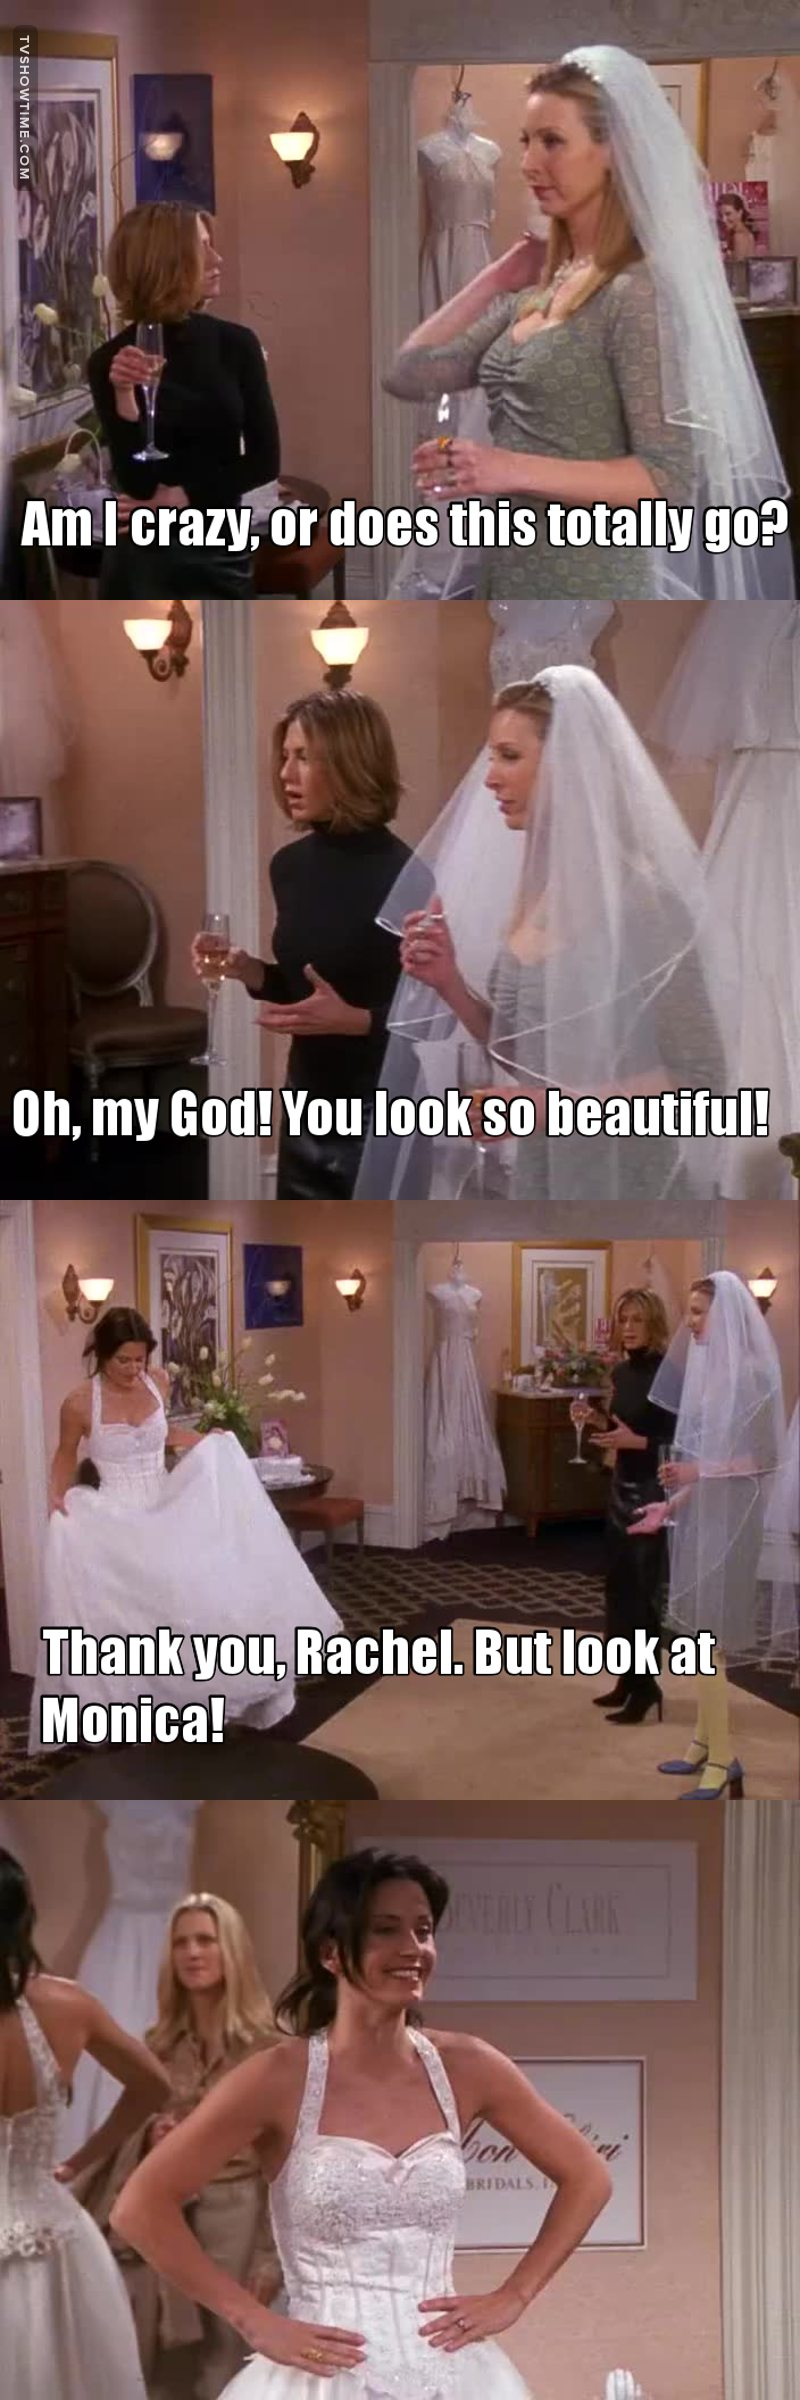 Tv Time Friends S07e17 The One With The Cheap Wedding Dress